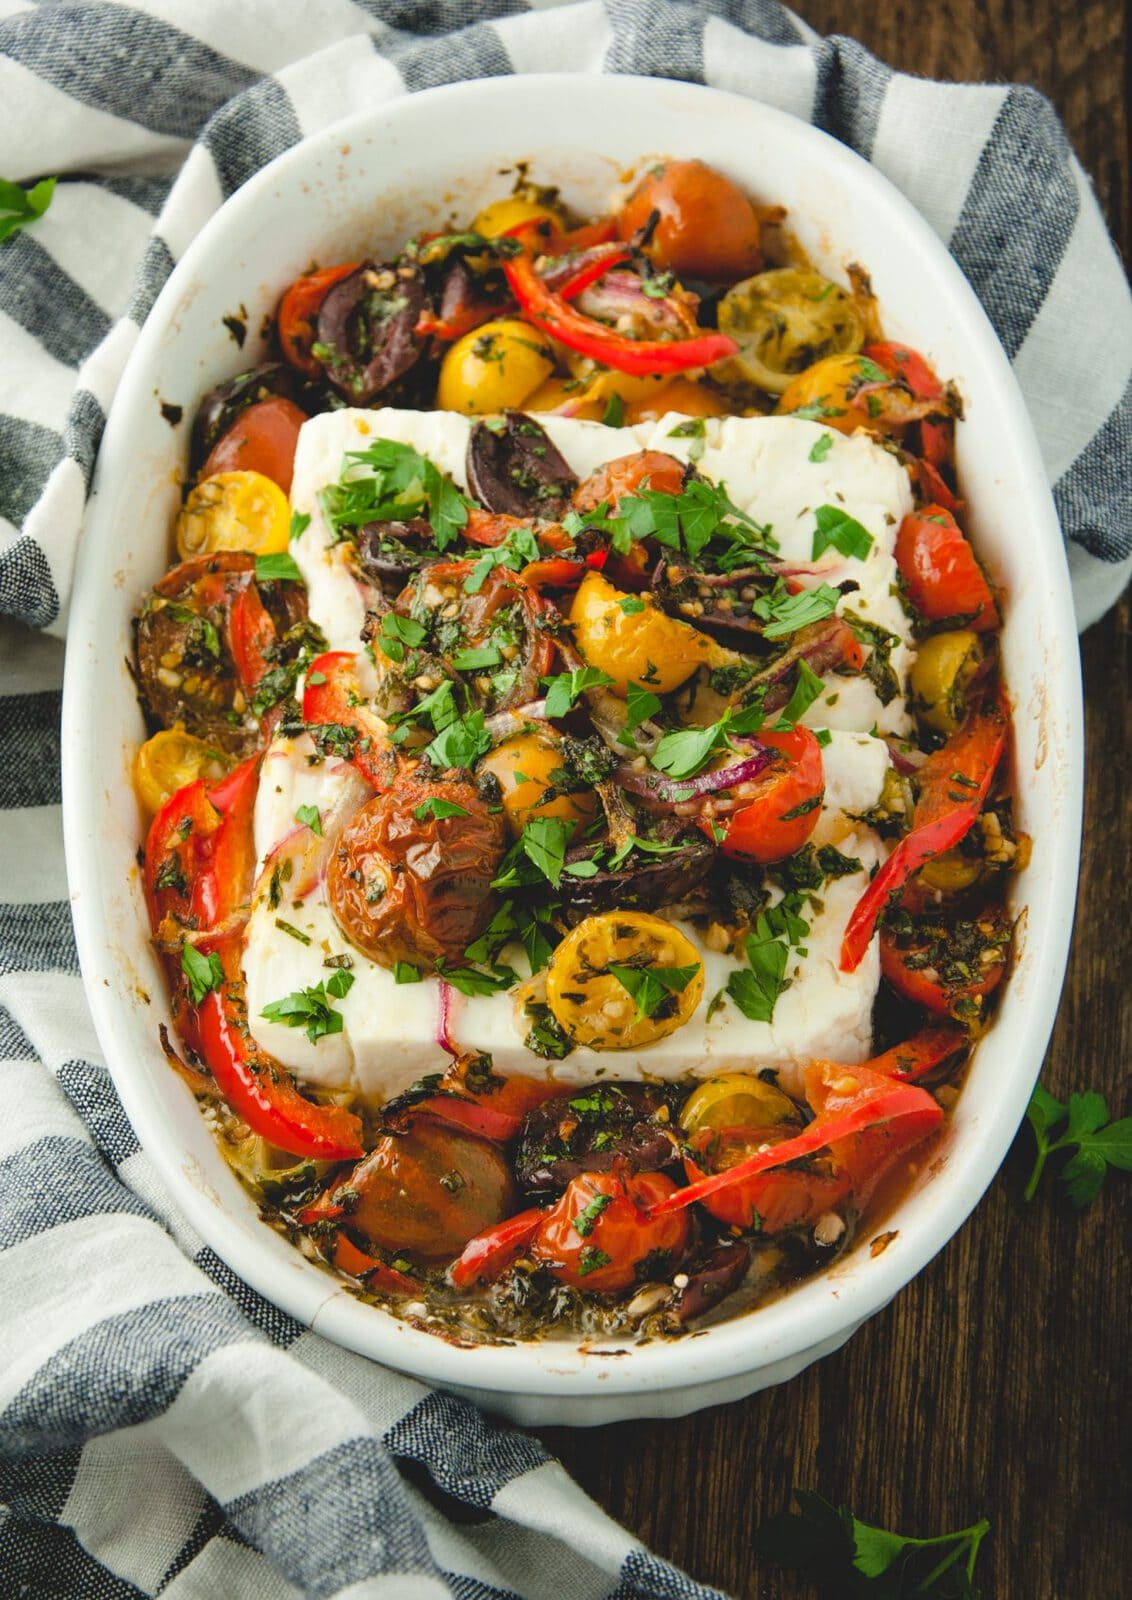 White dish with baked feta topped with tomatoes, herbs, olives and peppers